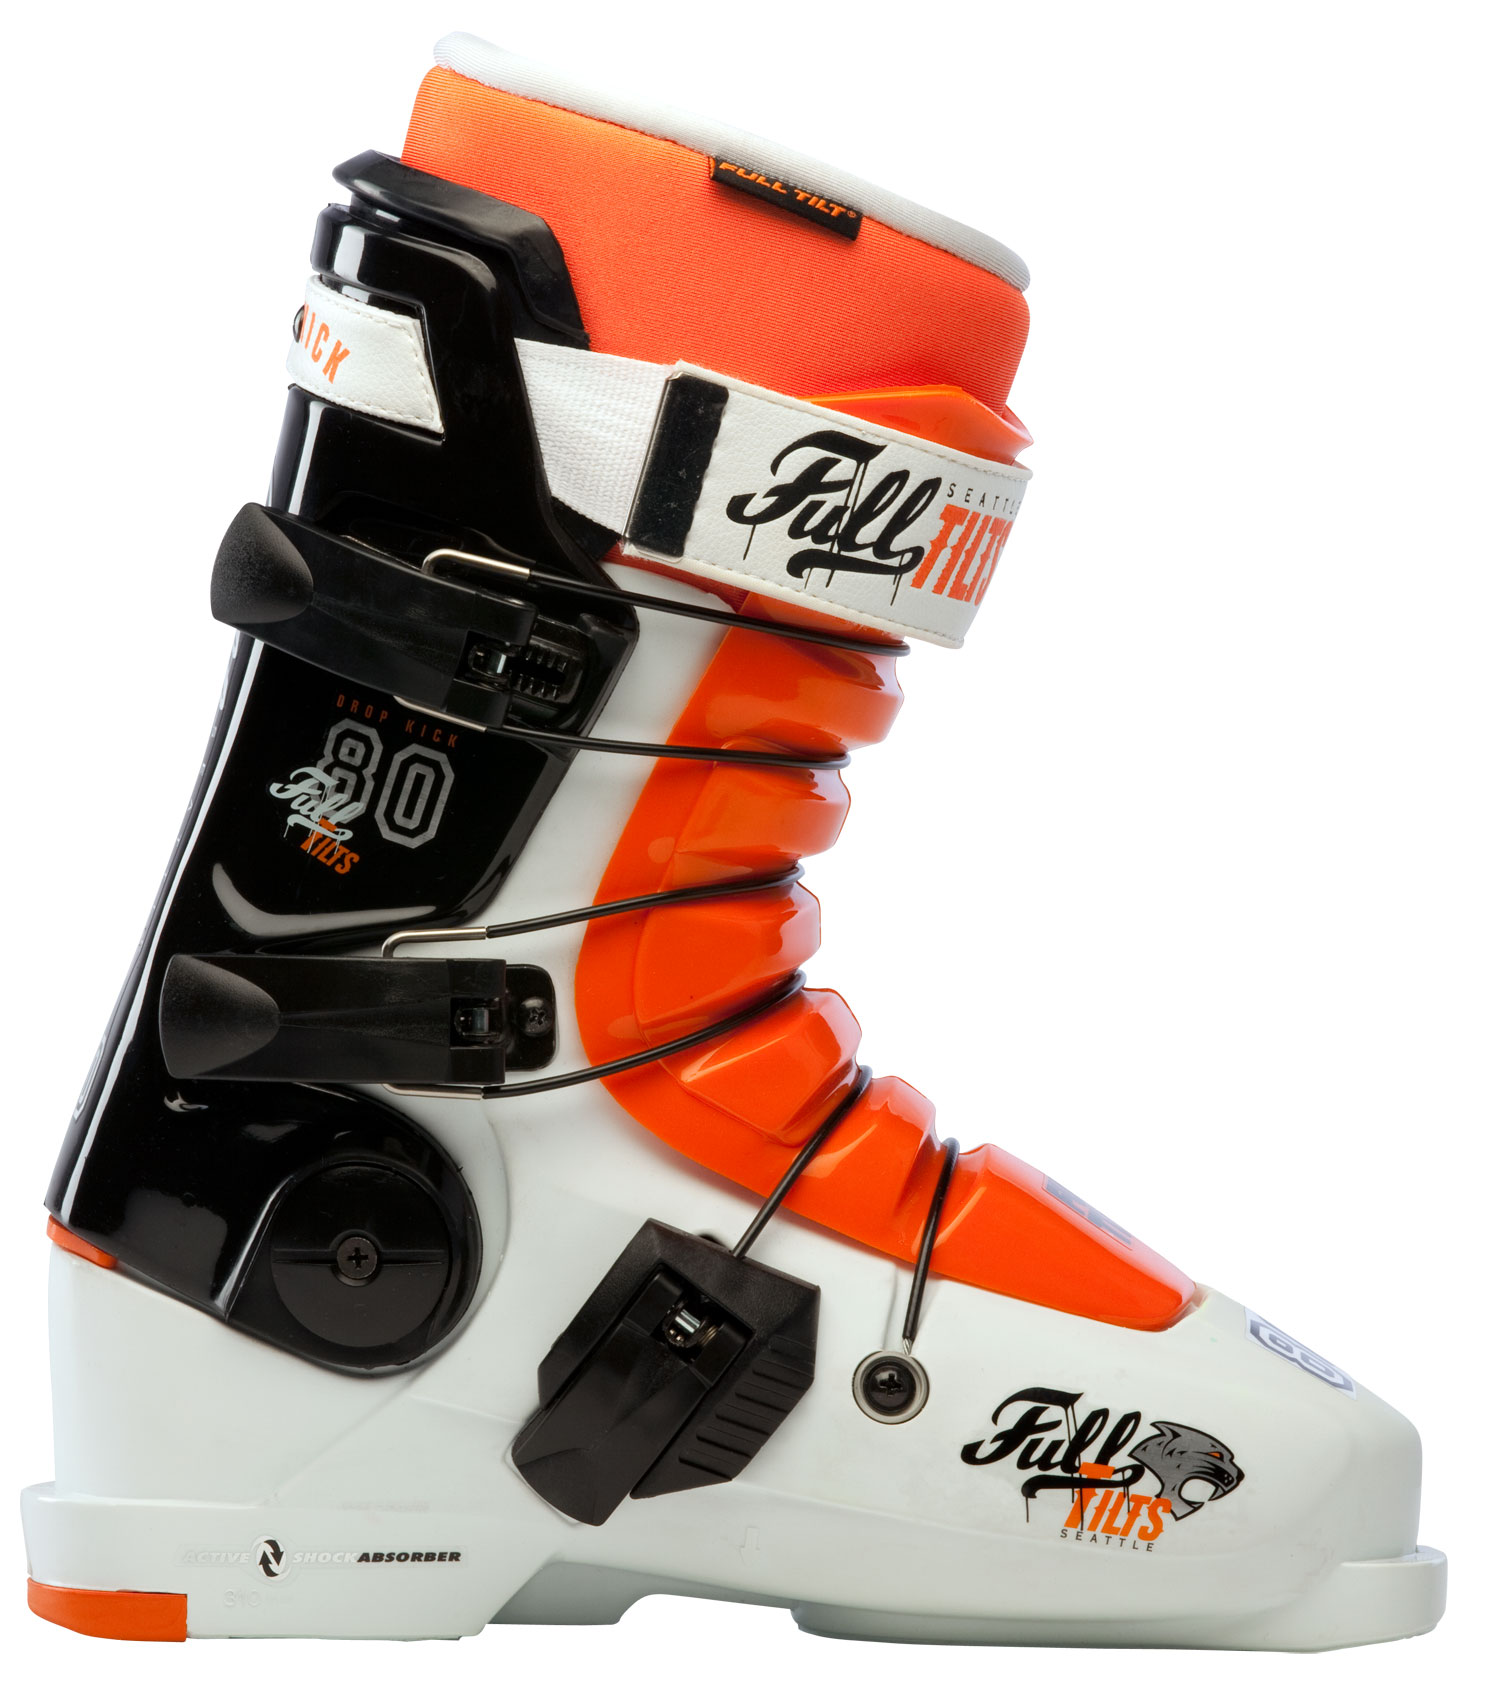 "Ski Key Features of the Full Tilt Drop Kick Ski Boots: Shell: FTO Original Last Width: 99mm Tongue (10 = Stiffest Flex): Interchangeable 6 Flex / 7 Ribs""= Weight g (sizes M 27, W 25): 1825 Foot Board: Active Sole: Replaceable Rubber Small Heel Buckles: 3 Nylon Micro Ratchet Closure System: 3 Cables Forward Cant Adjustment: 3 & 7.6mm Wedges Lateral Cant Adjustment: 12mm Toe / Heal Height: 14.5mm / 32mm Cuff: Free Hinging Quickfit Liner Model: PERFORMER Open Cell Foam: 4mm Soft Density Intuition® Foam: 2mm Regular Density Intuition® Foam: 7mm High Density Intuition® Foam: Moldable Foam: Intuition® Powerwrap: Wide Toe: Wide toe - $383.95"